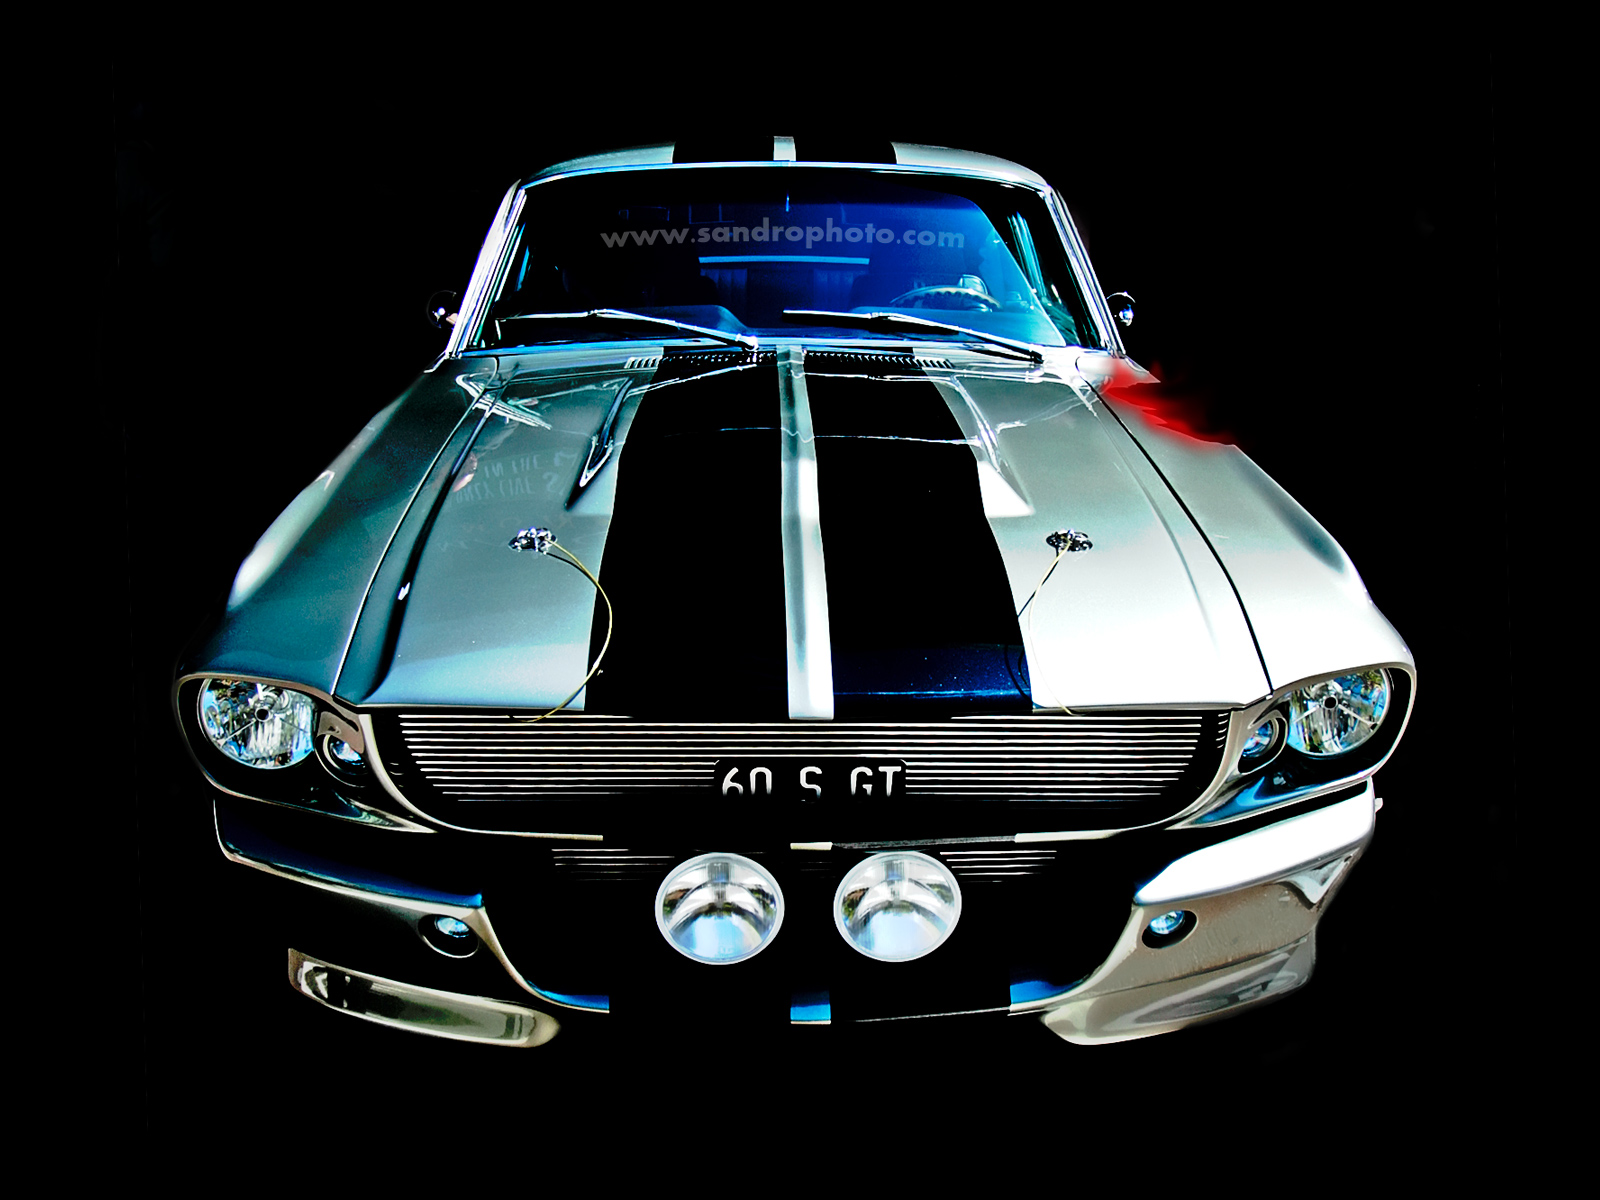 http://1.bp.blogspot.com/-jzMcmjLTqp0/T3qG9o4l1kI/AAAAAAAAEaU/acAEokaNXDk/s1600/16-The-best-top-desktop-cars-wallpapers-mustang-60s-gt-wallpaper.jpg